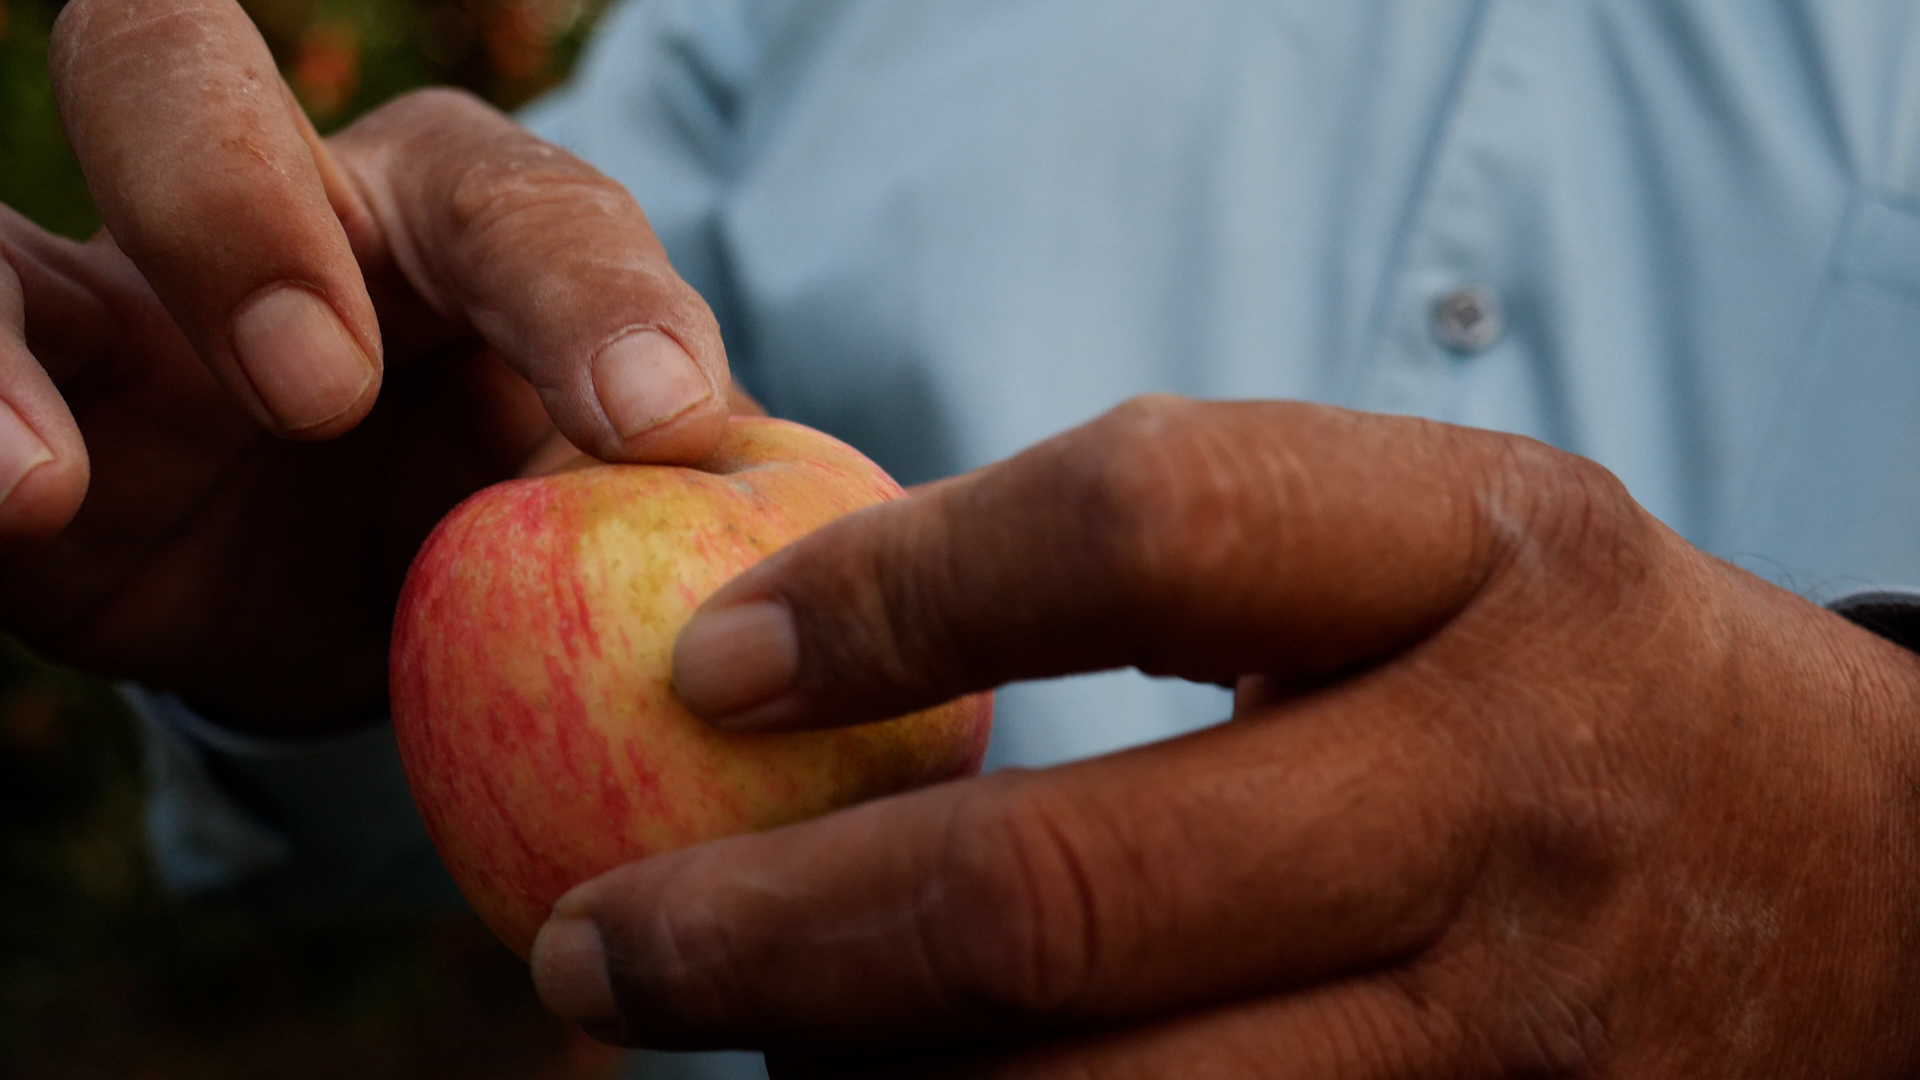 A close up of hands holding an apple